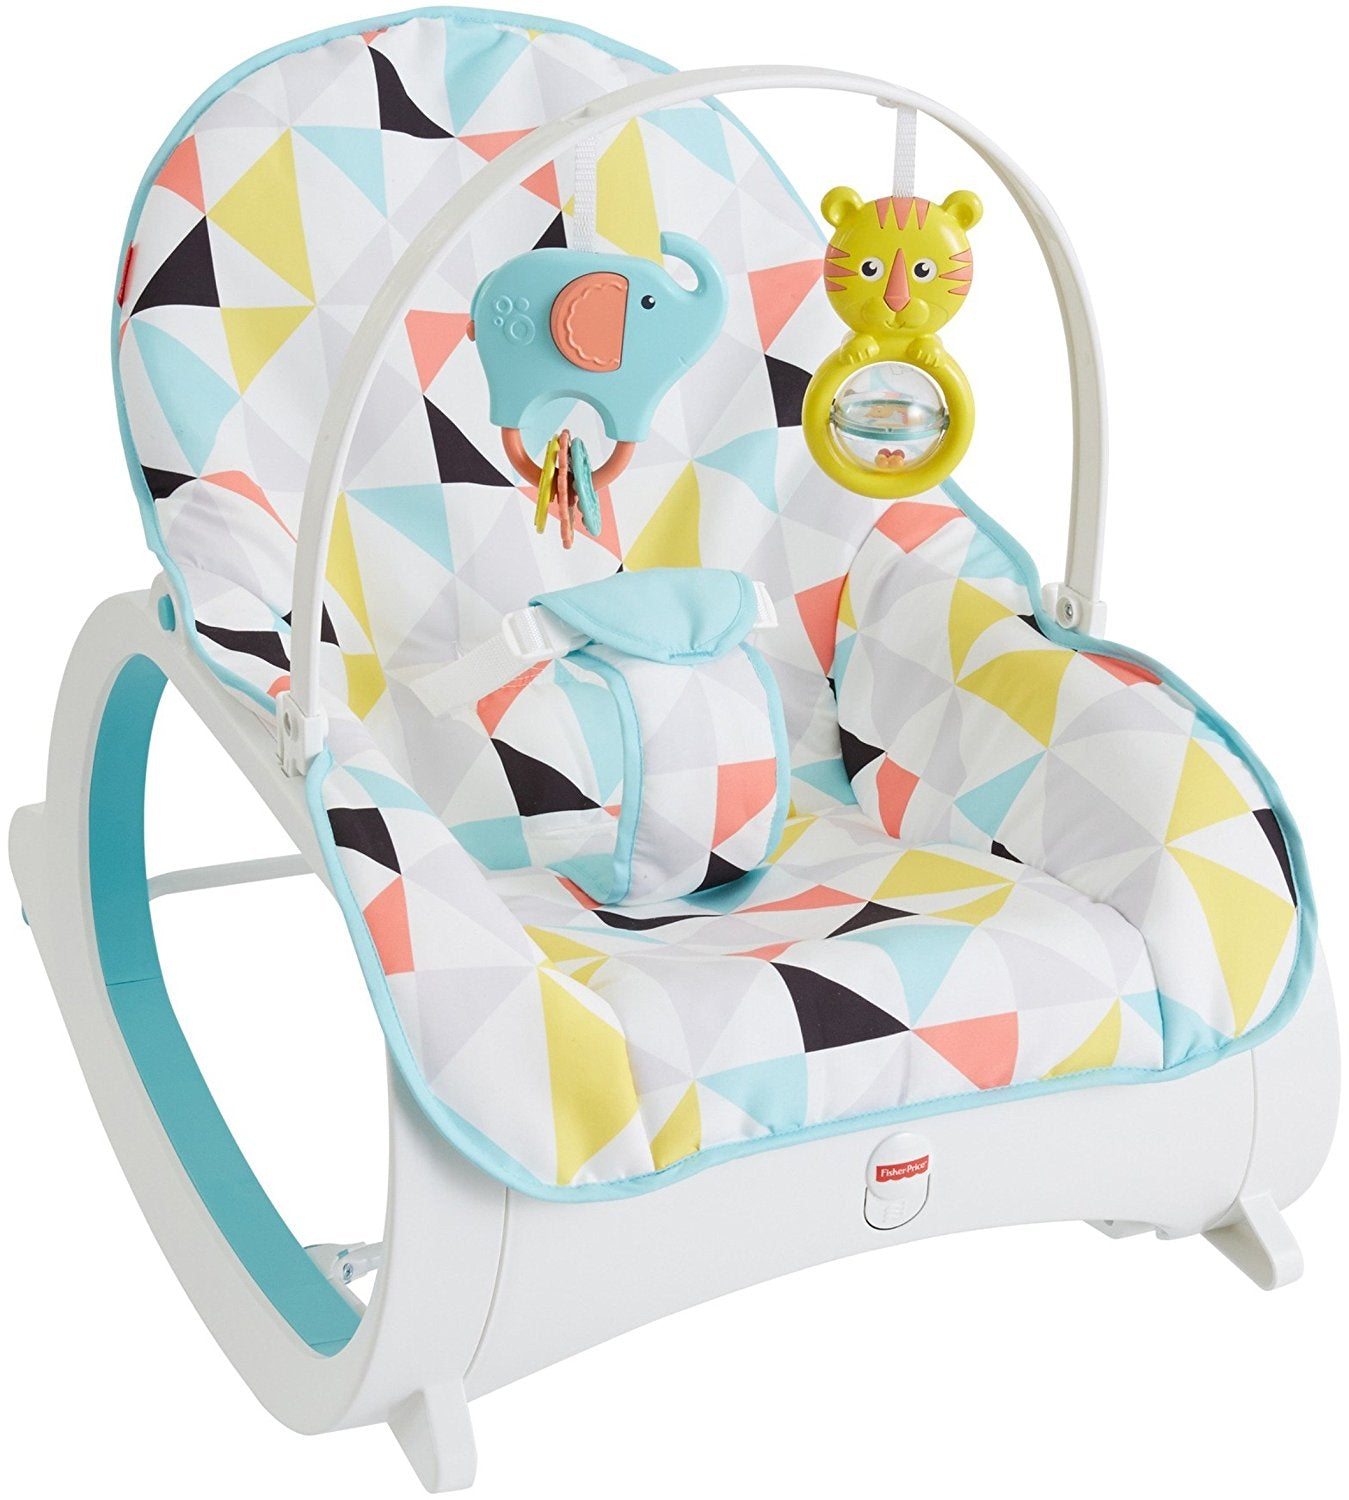 Fisher PriceInfant-To-Toddler Rocker - Windmill, Gender Neutral FDP04